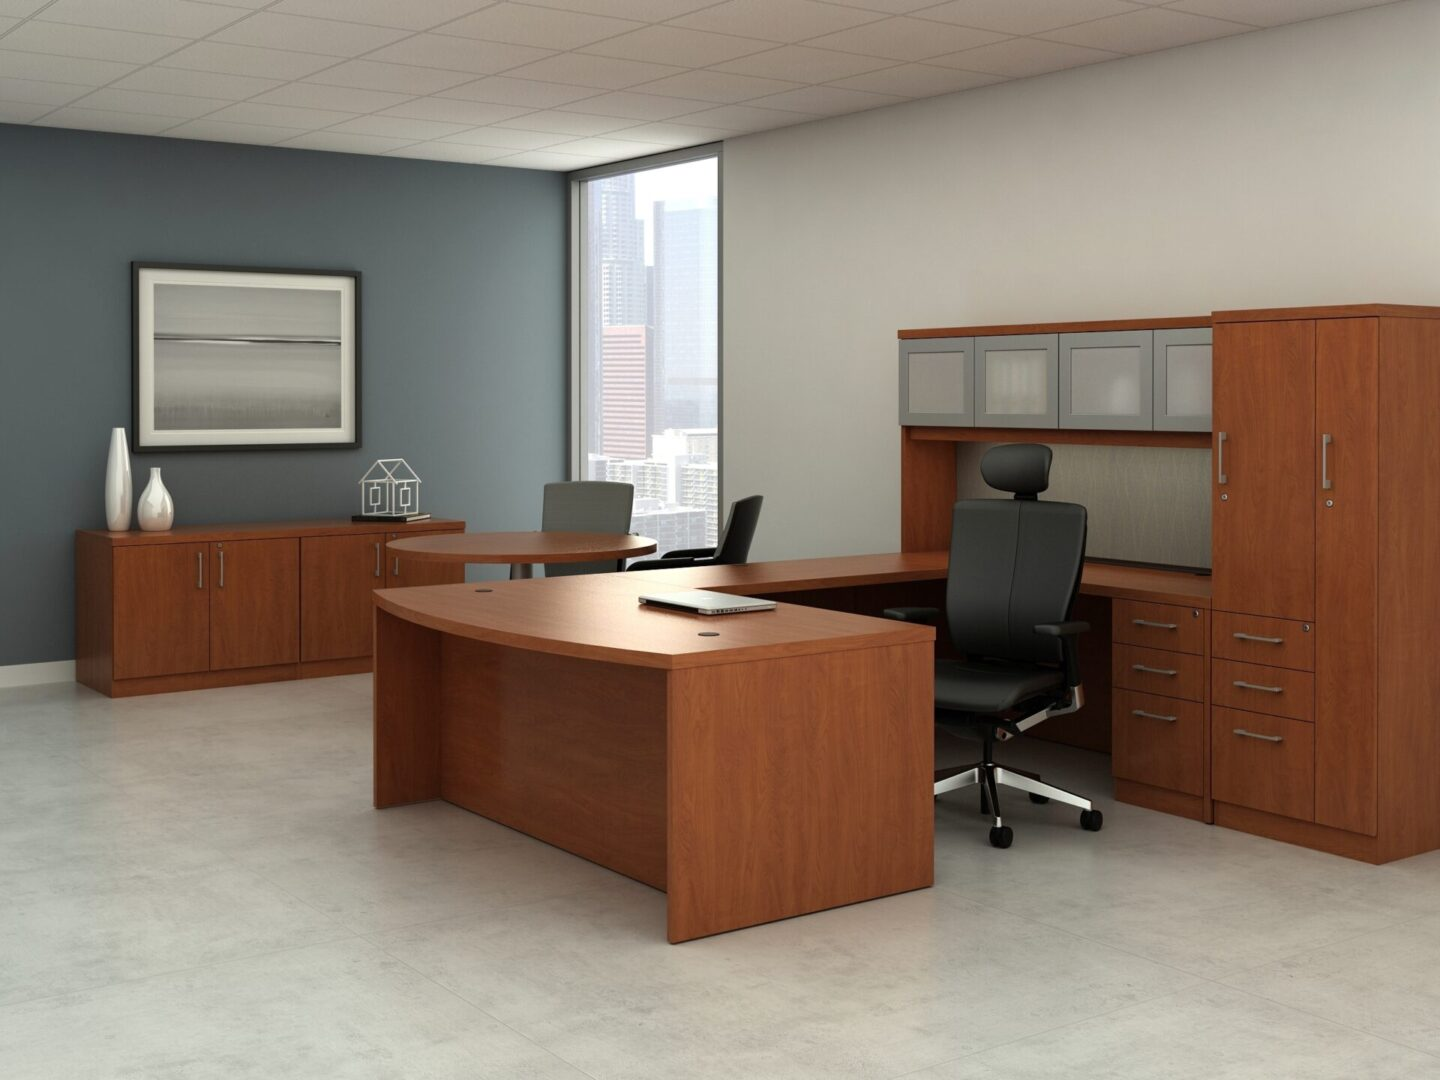 TWAR-8XZJW6-Intrinsic-Private-Office-with-T51